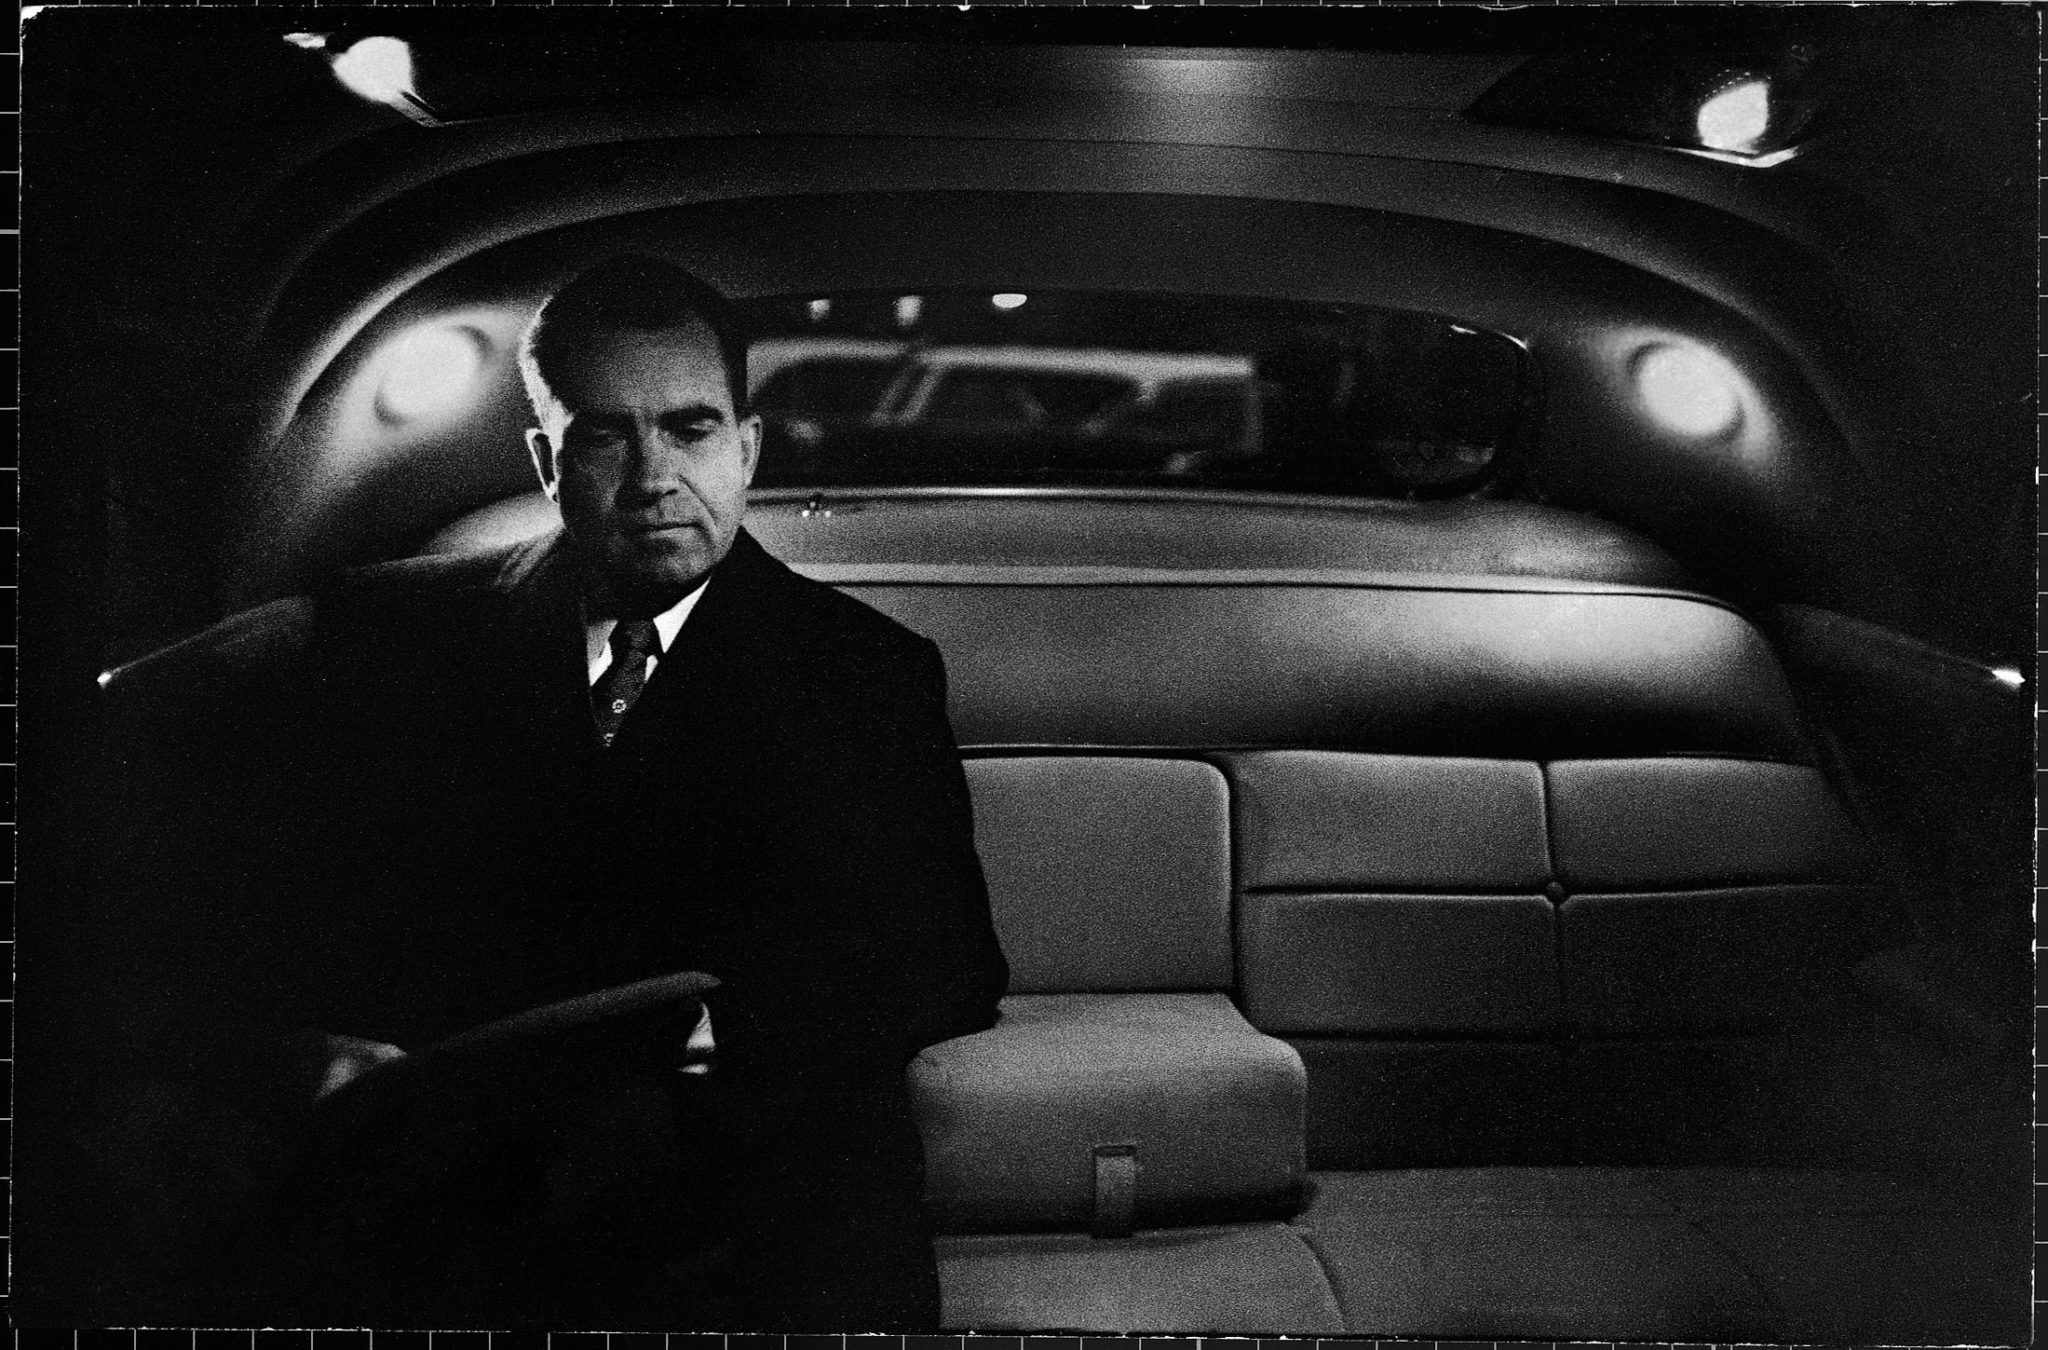 Vice President Richard Nixon sitting in the back seat of a dimly lit limousine after a day taking over duties for President Eisenhower, during his hospitalization from a stroke. (Photo by Hank Walker/The LIFE Picture Collection © Meredith Corporation)